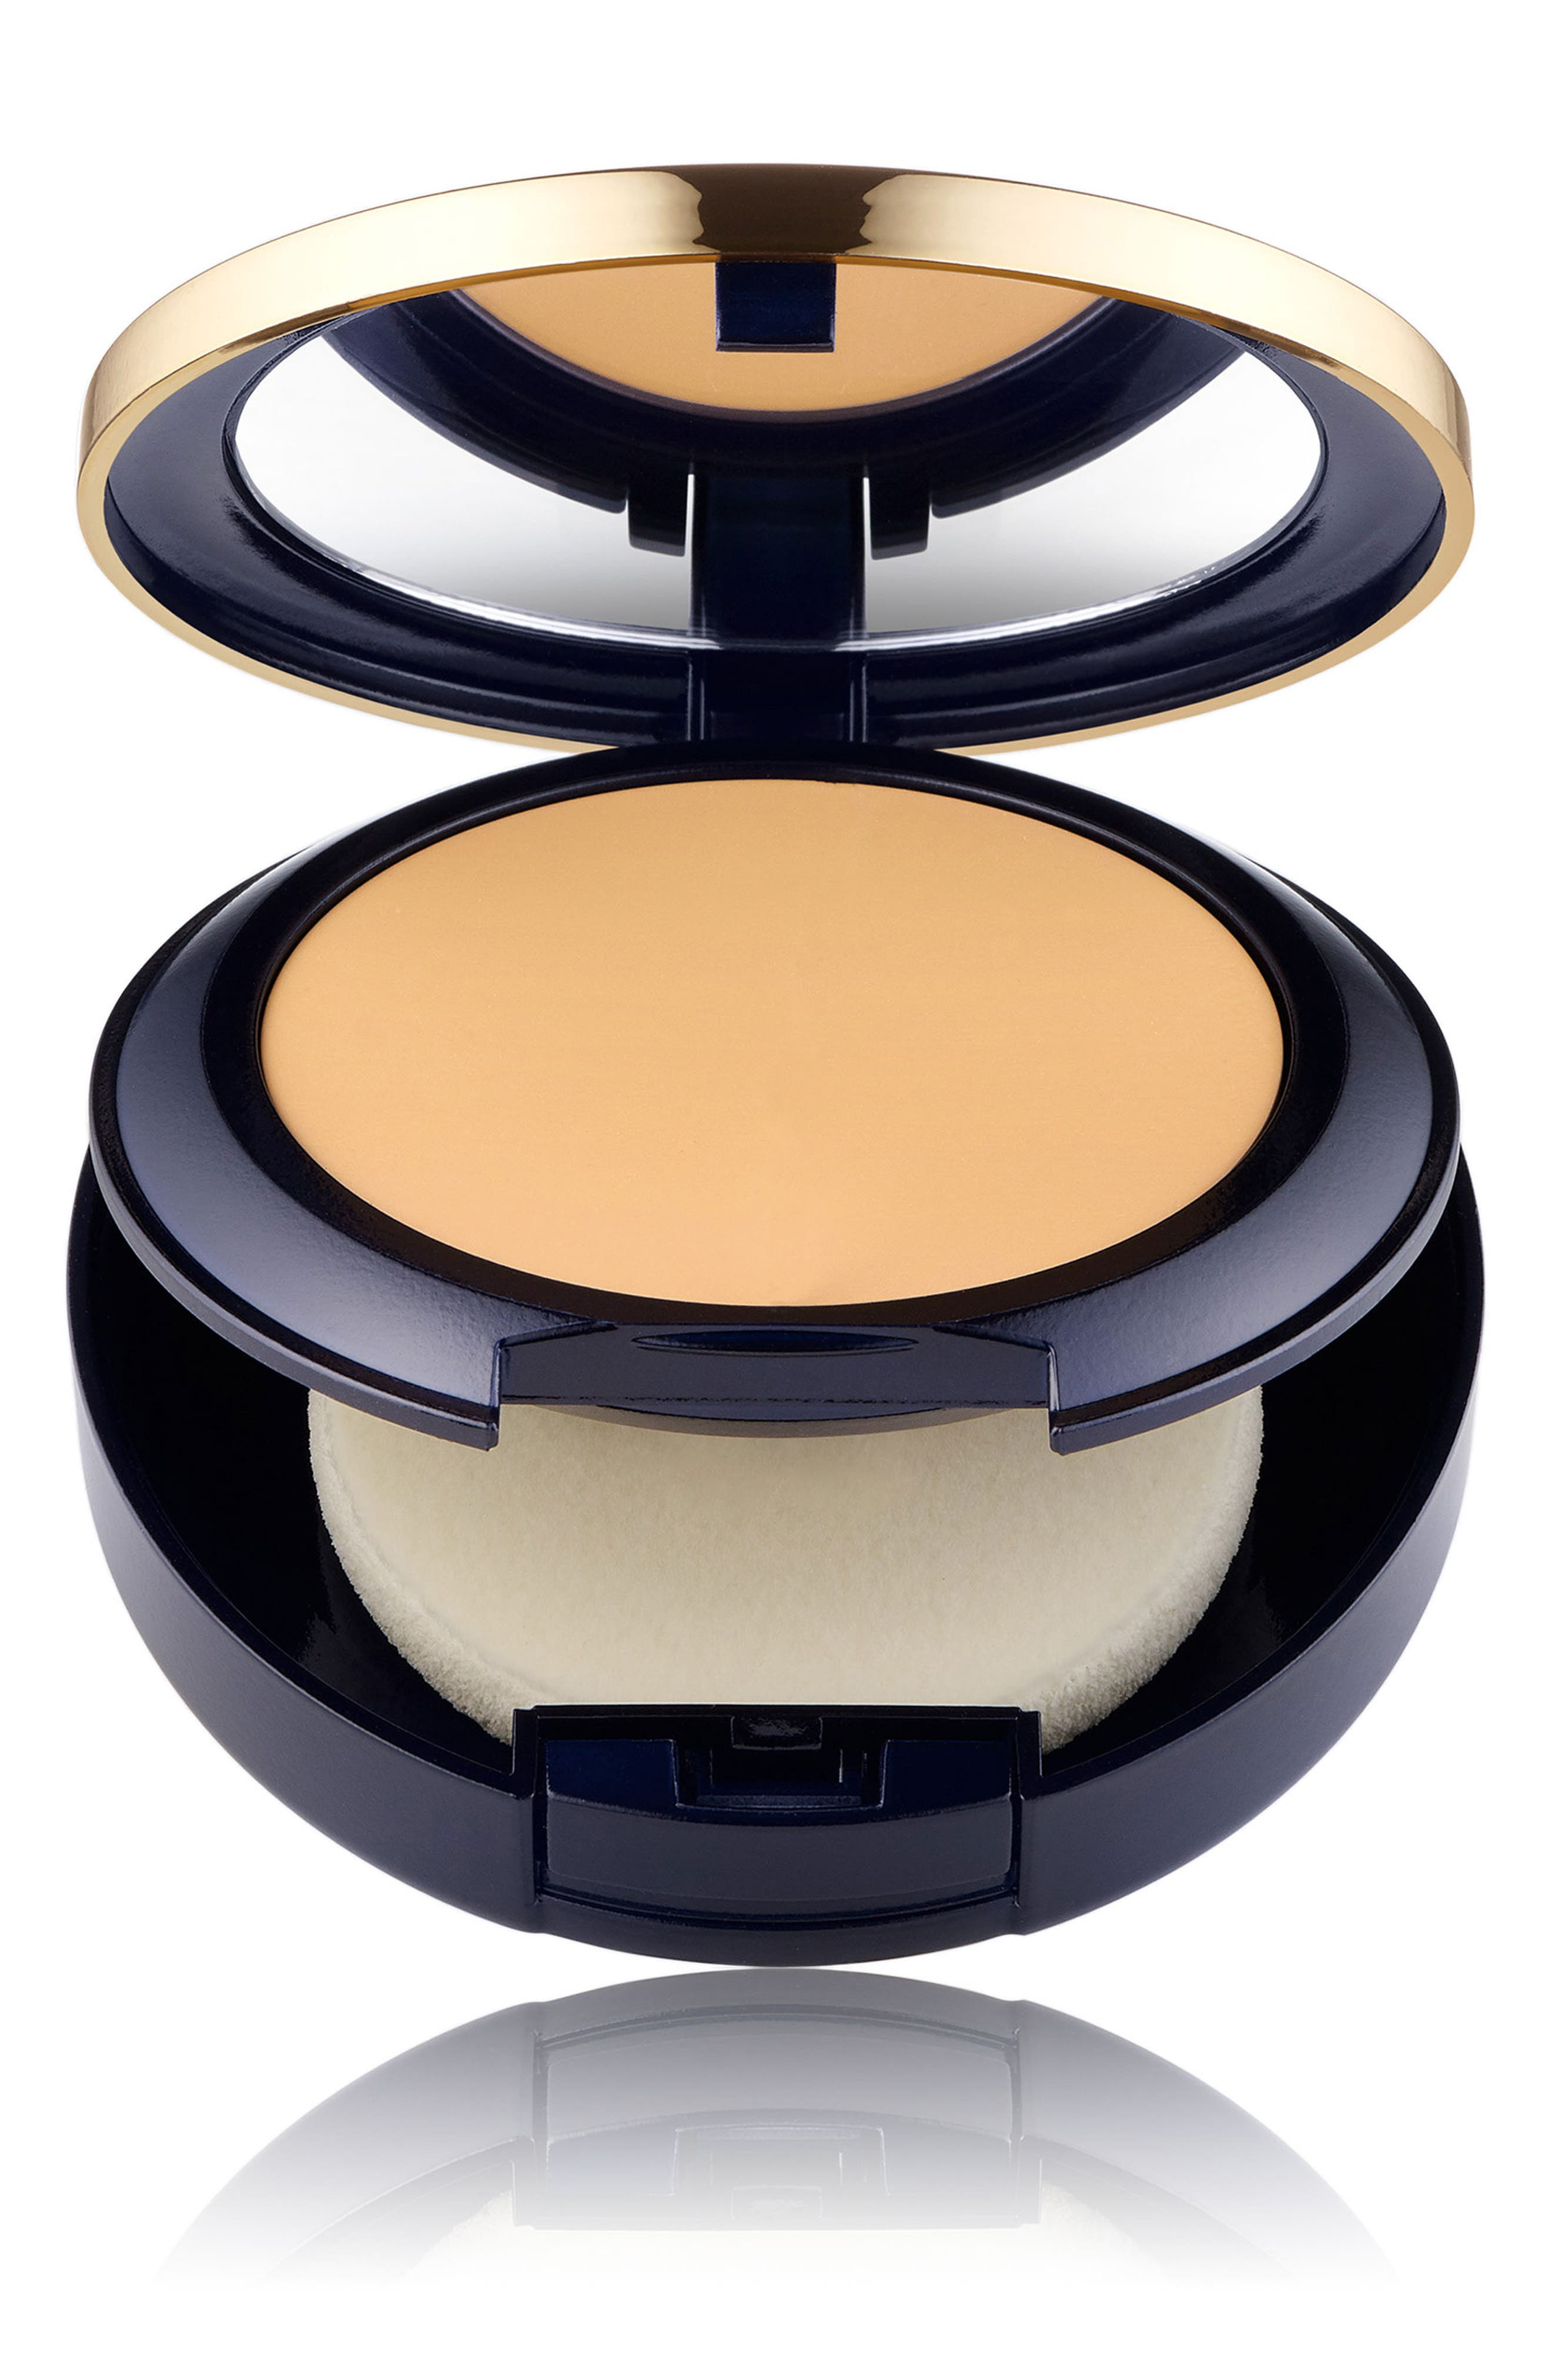 Estee Lauder Double Wear Stay In Place Matte Powder Foundation - 4N2 Spiced Sand